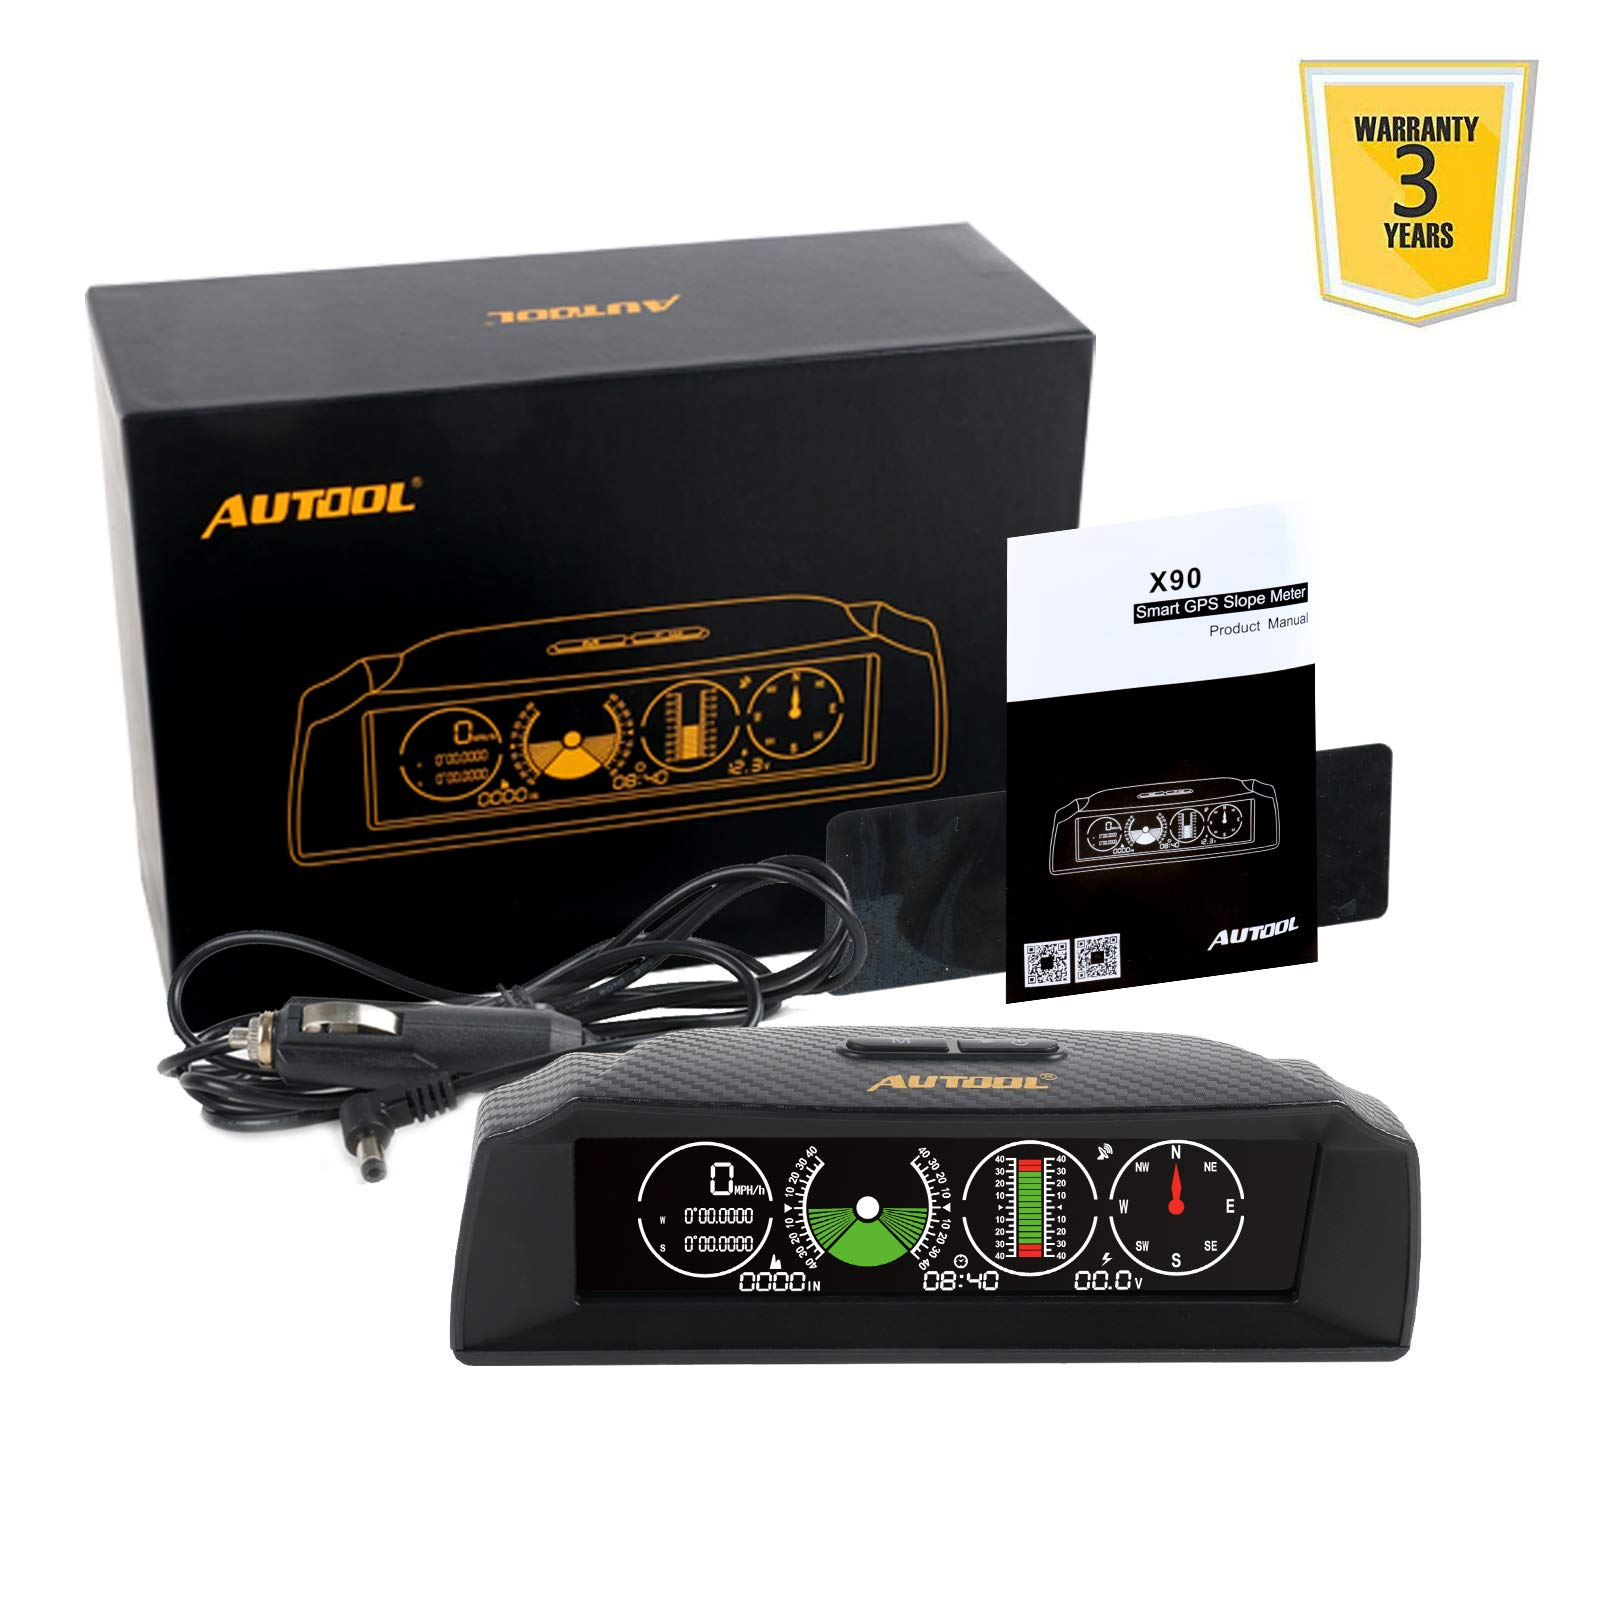 Car Inclinometer Level Tilt Gauge, AUTOOL X90 Car HUD GPS Speedometer MPH Car Electronic Compass Clinometer Indicator, Digital Inclinometer Car Angle Slope Meter For off-road Vehicle by AUTOOL